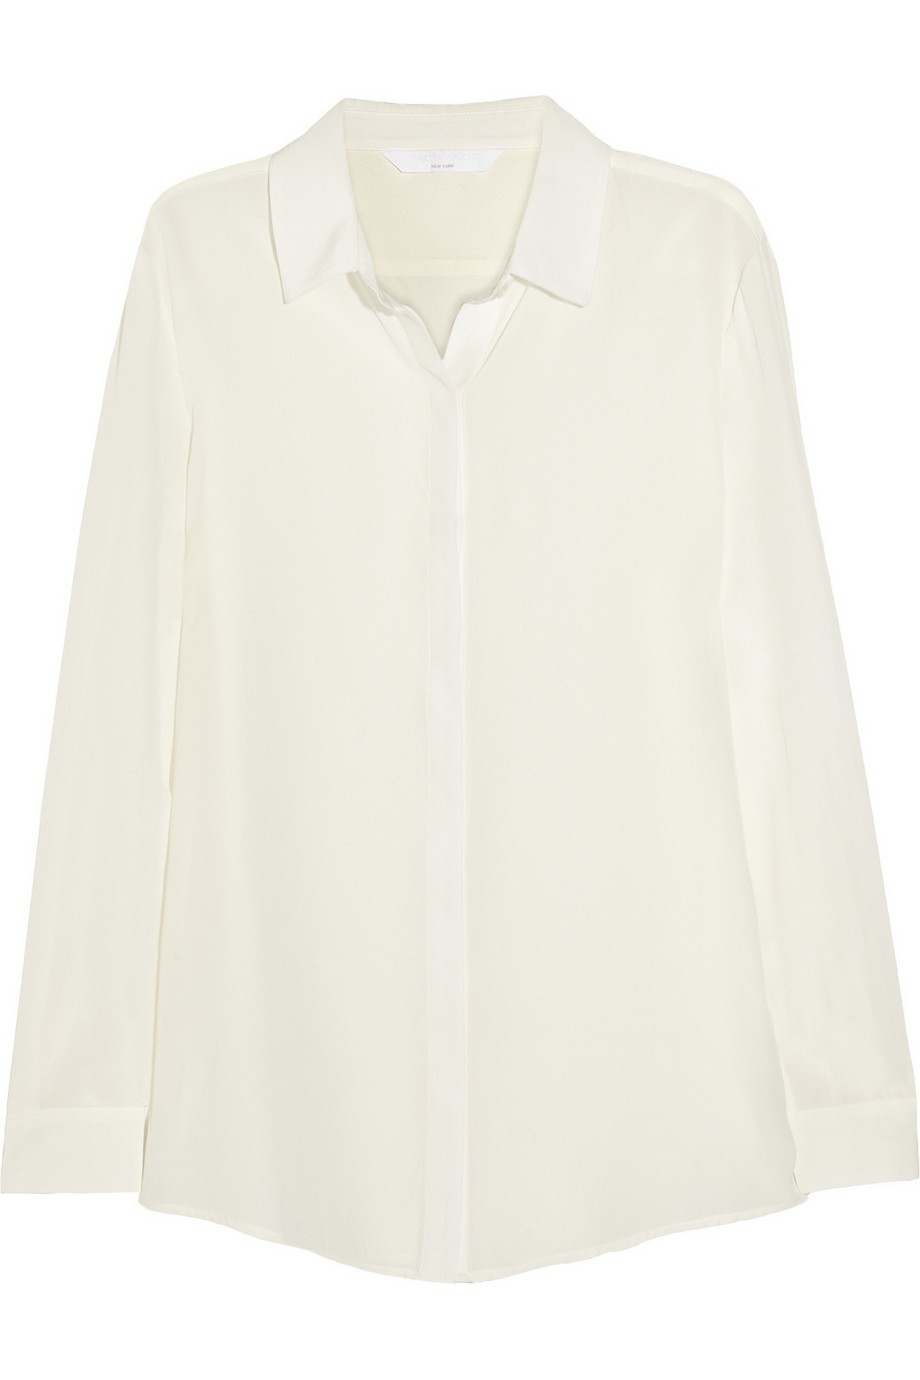 Jacob silk shirt